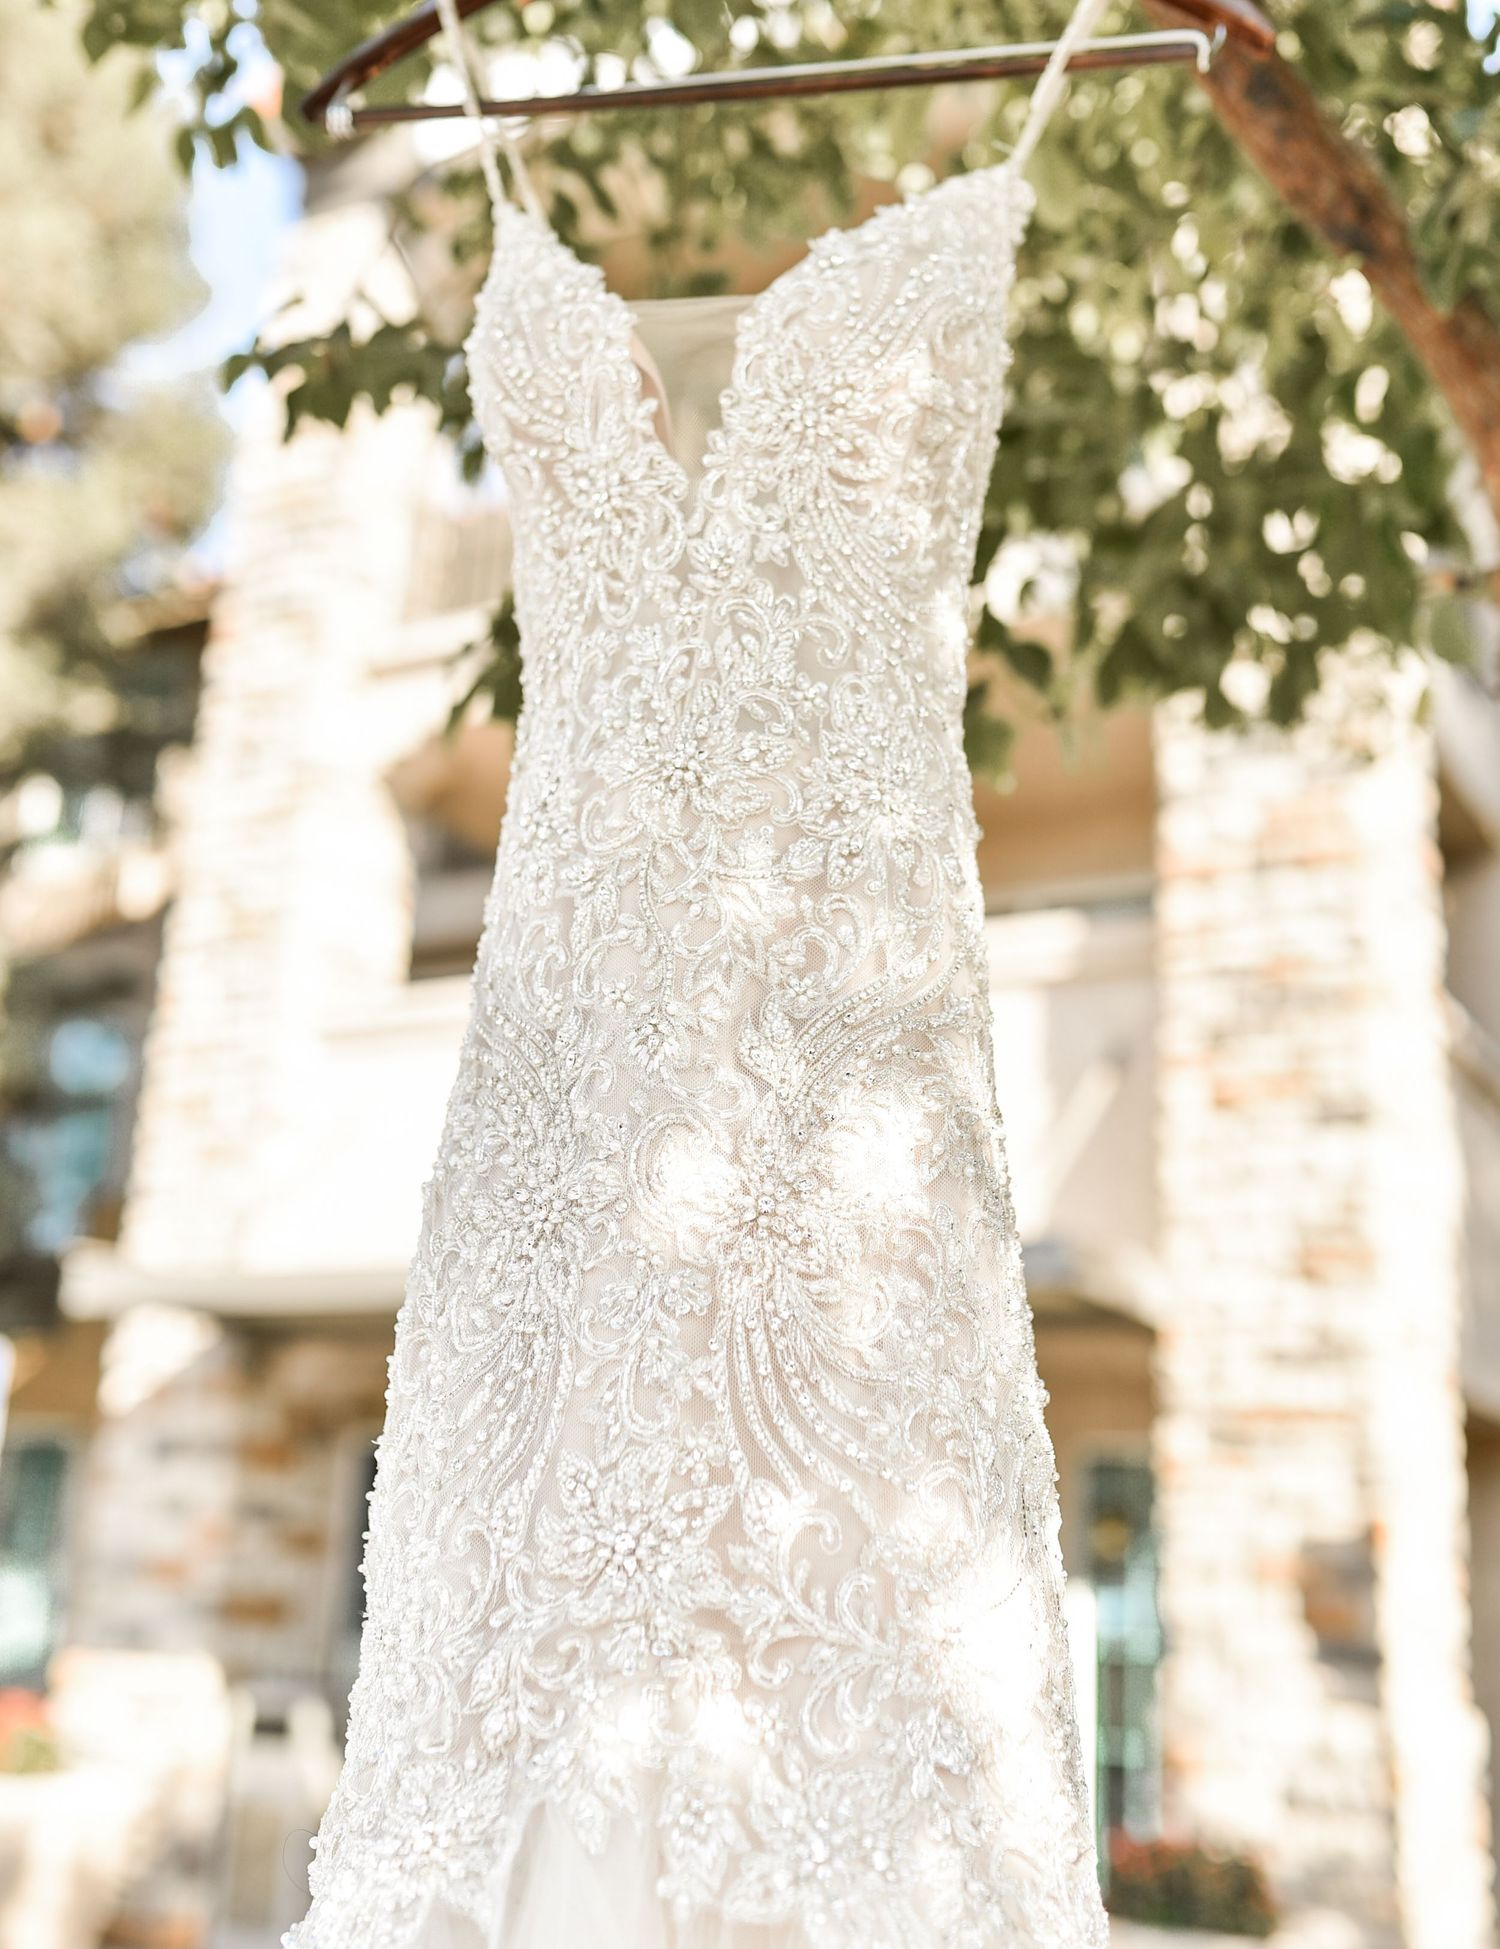 Wedding dress from Annabelle's Bridal in Visalia California photo by Miranda Munoz Photography